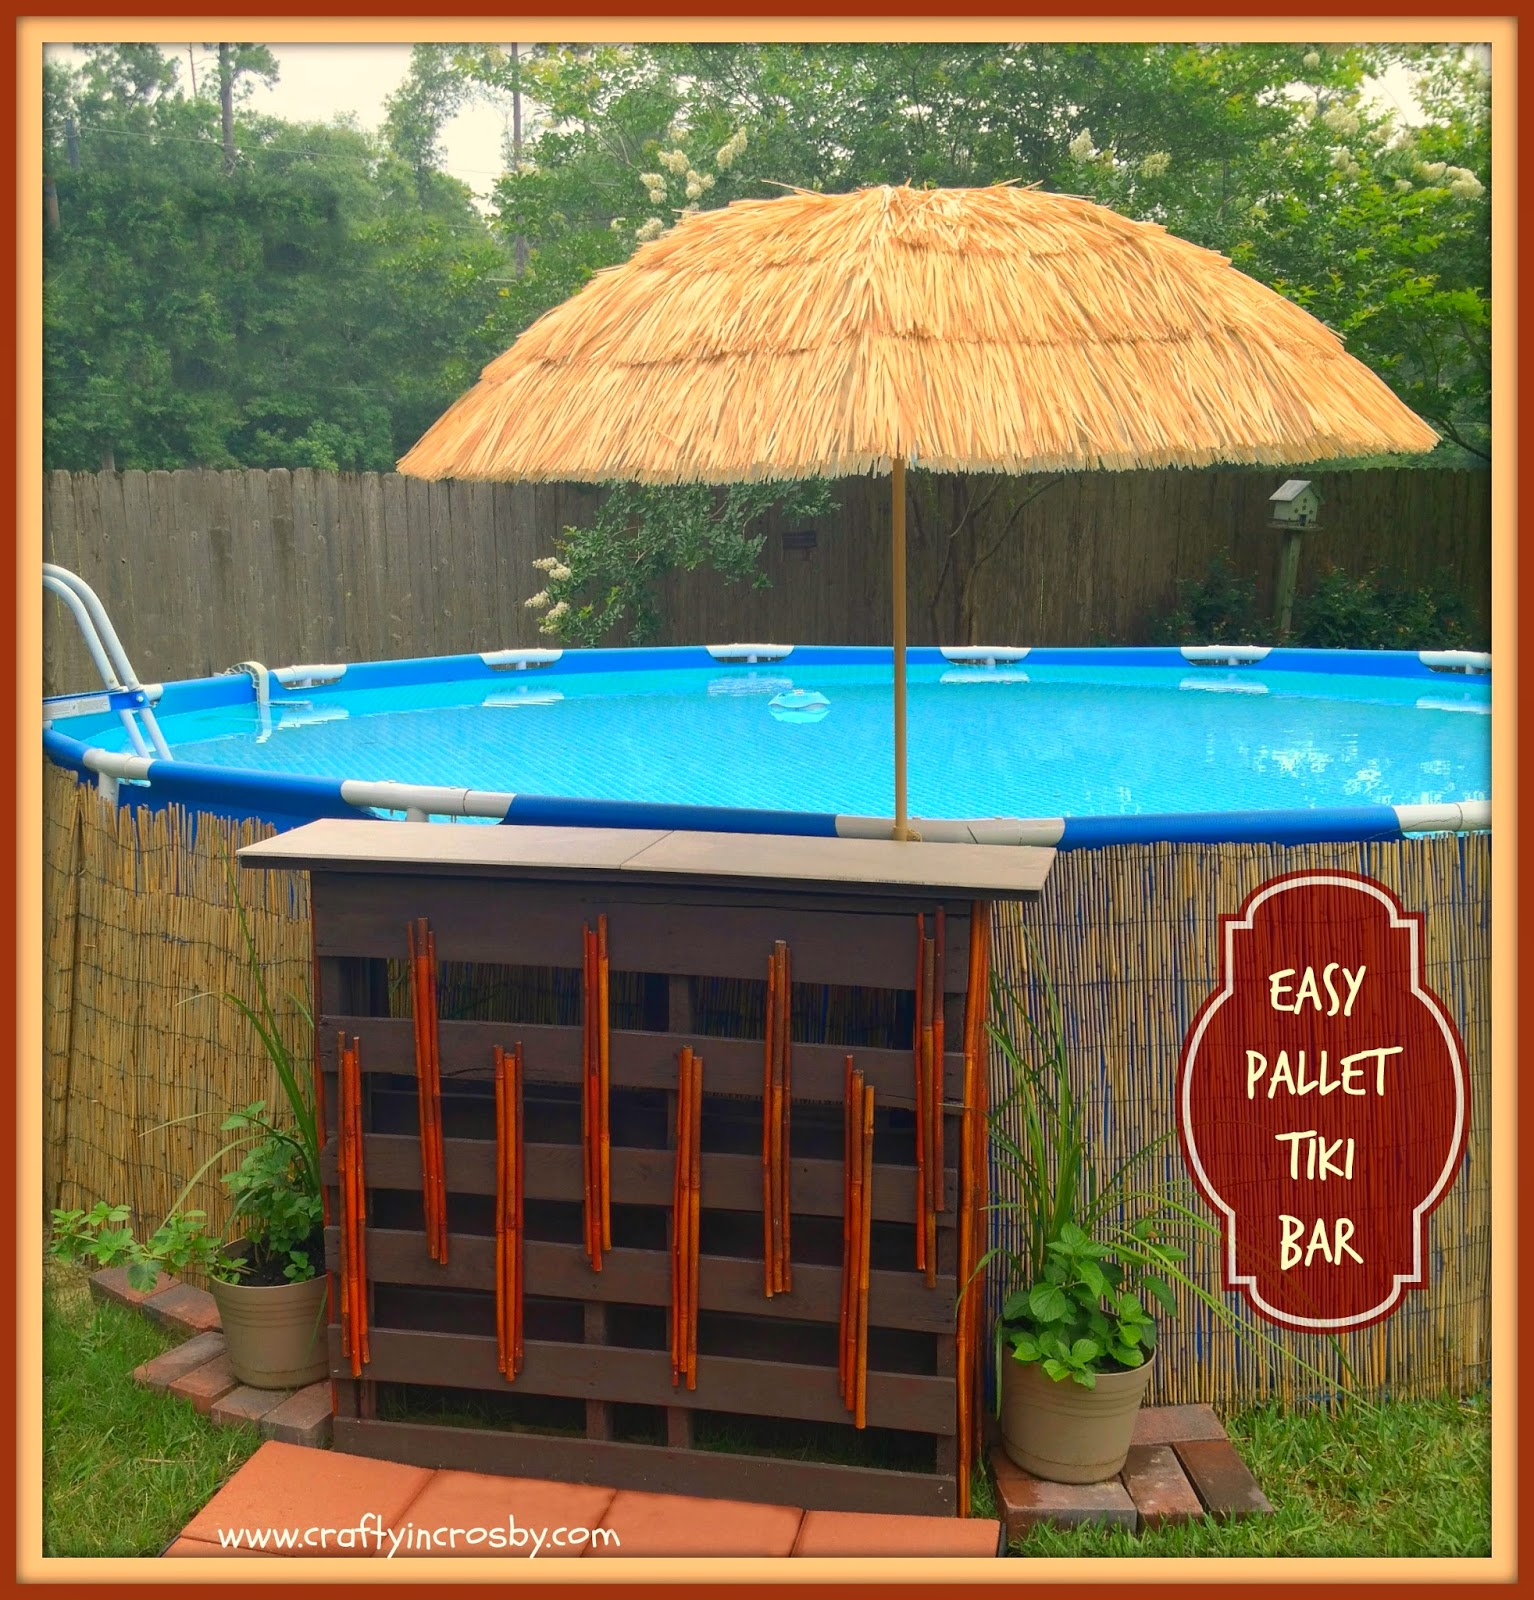 Pams party practical tips diy pallet tiki bar feature for Decor around swimming pool